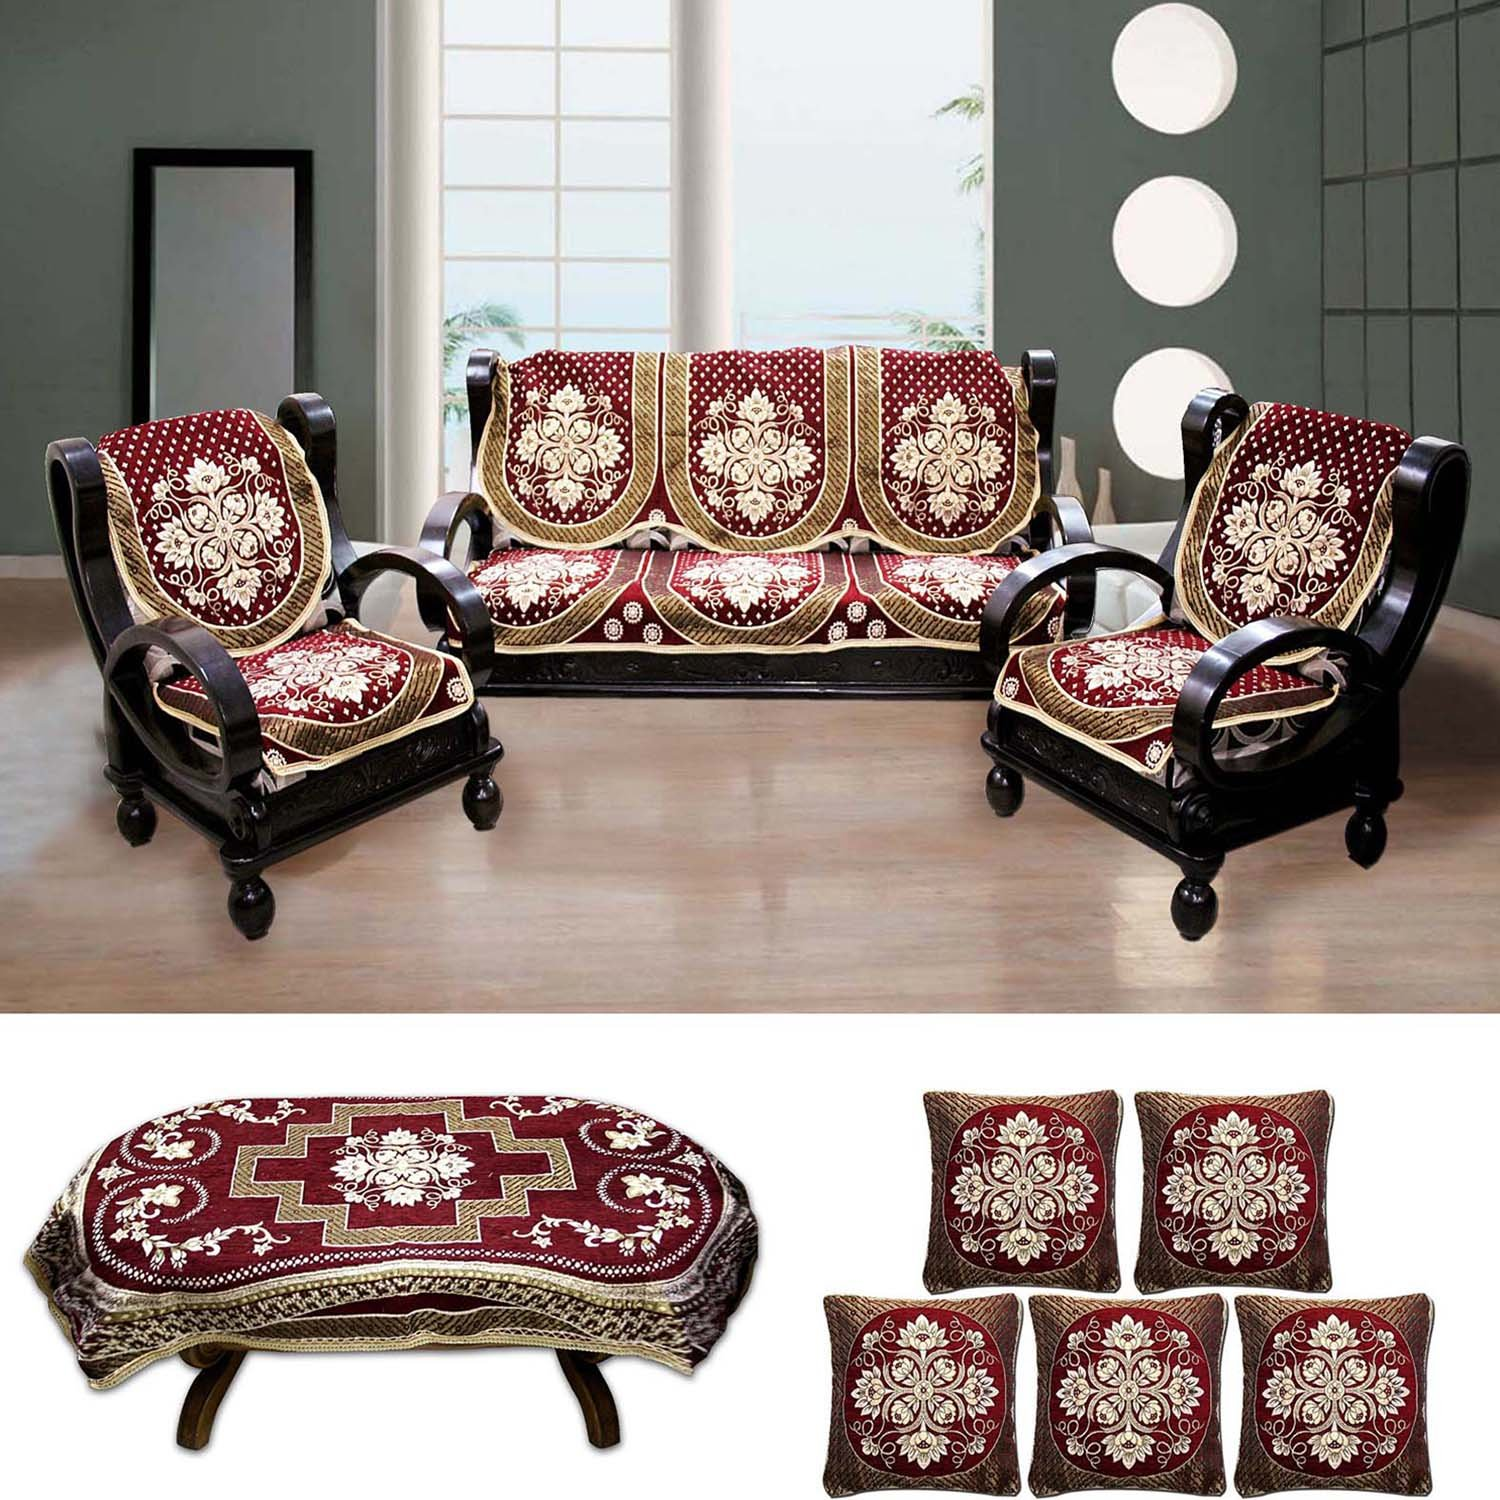 Sofa Cushion Cover Set: Buy FURNISHING KINGDOM Floral Velvet Sofa Cover  Table Cover and    ,